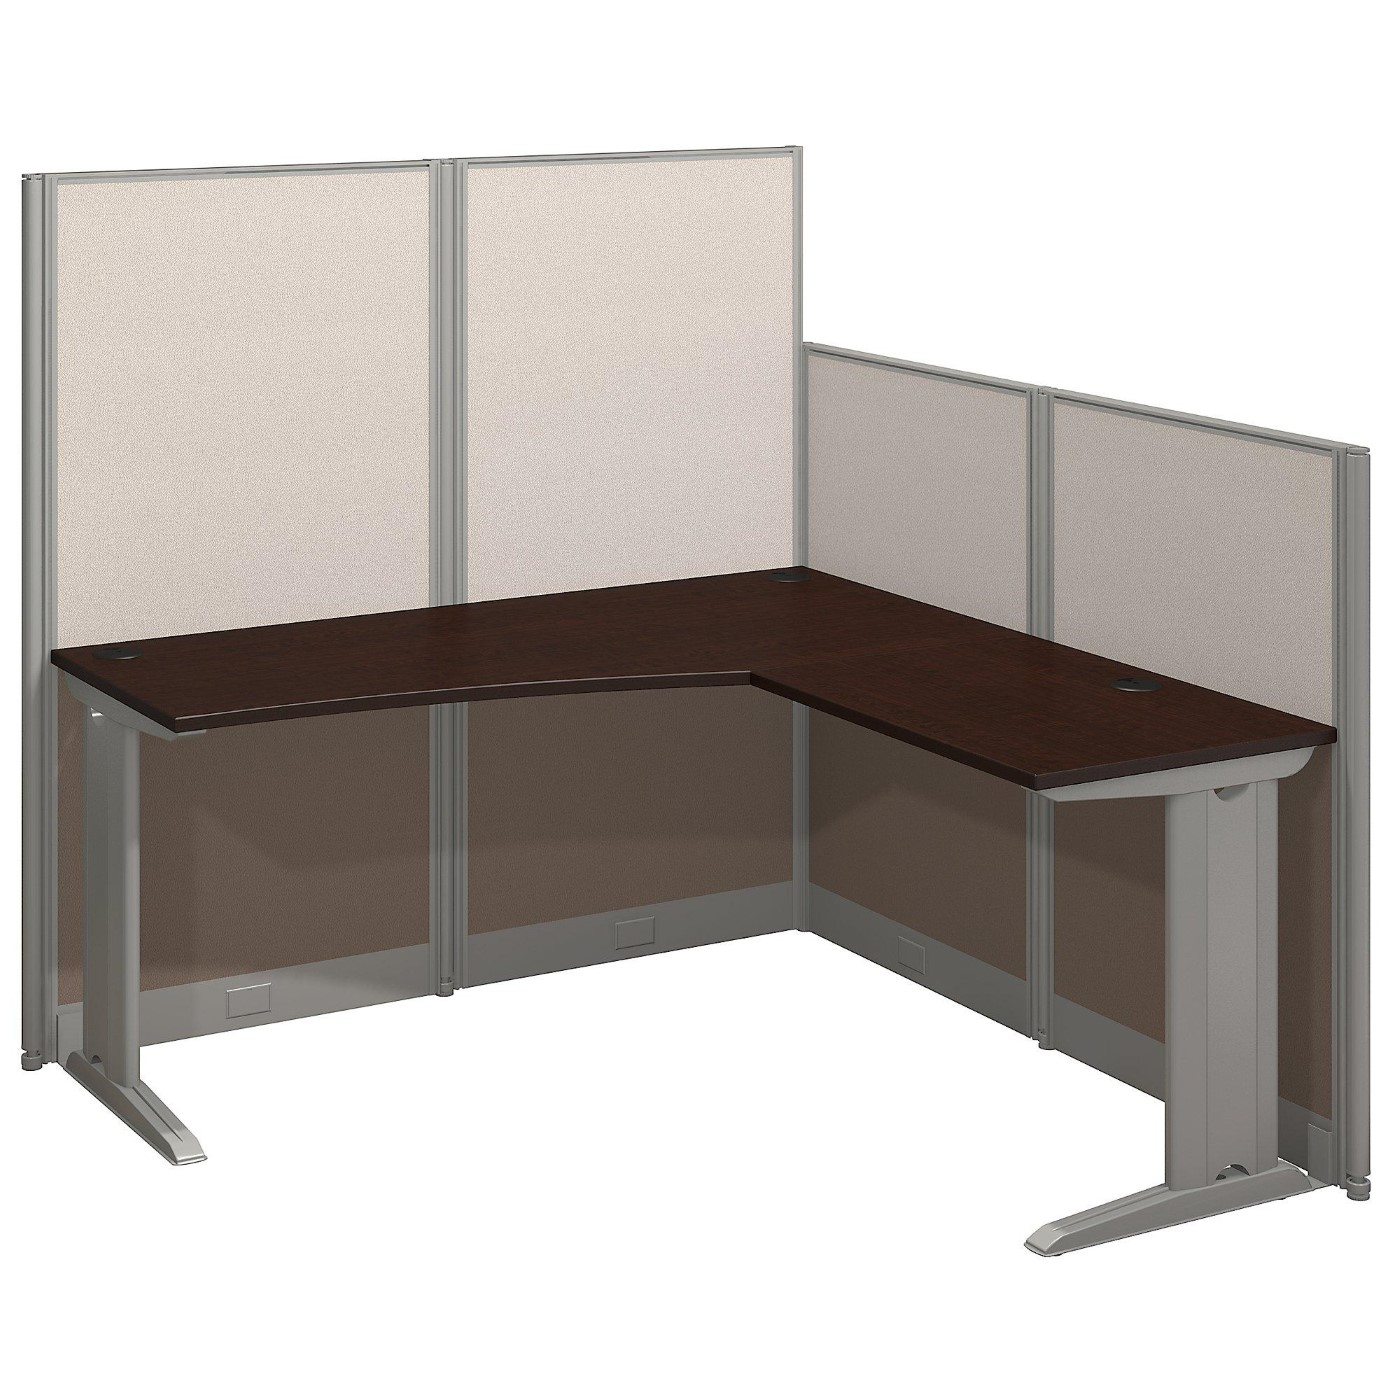 BUSH BUSINESS FURNITURE OFFICE IN AN HOUR 65W X 65D L SHAPED CUBICLE WORKSTATION. FREE SHIPPING.  SALE DEDUCT 10% MORE ENTER '10percent' IN COUPON CODE BOX WHILE CHECKING OUT. ENDS 5-31-20.